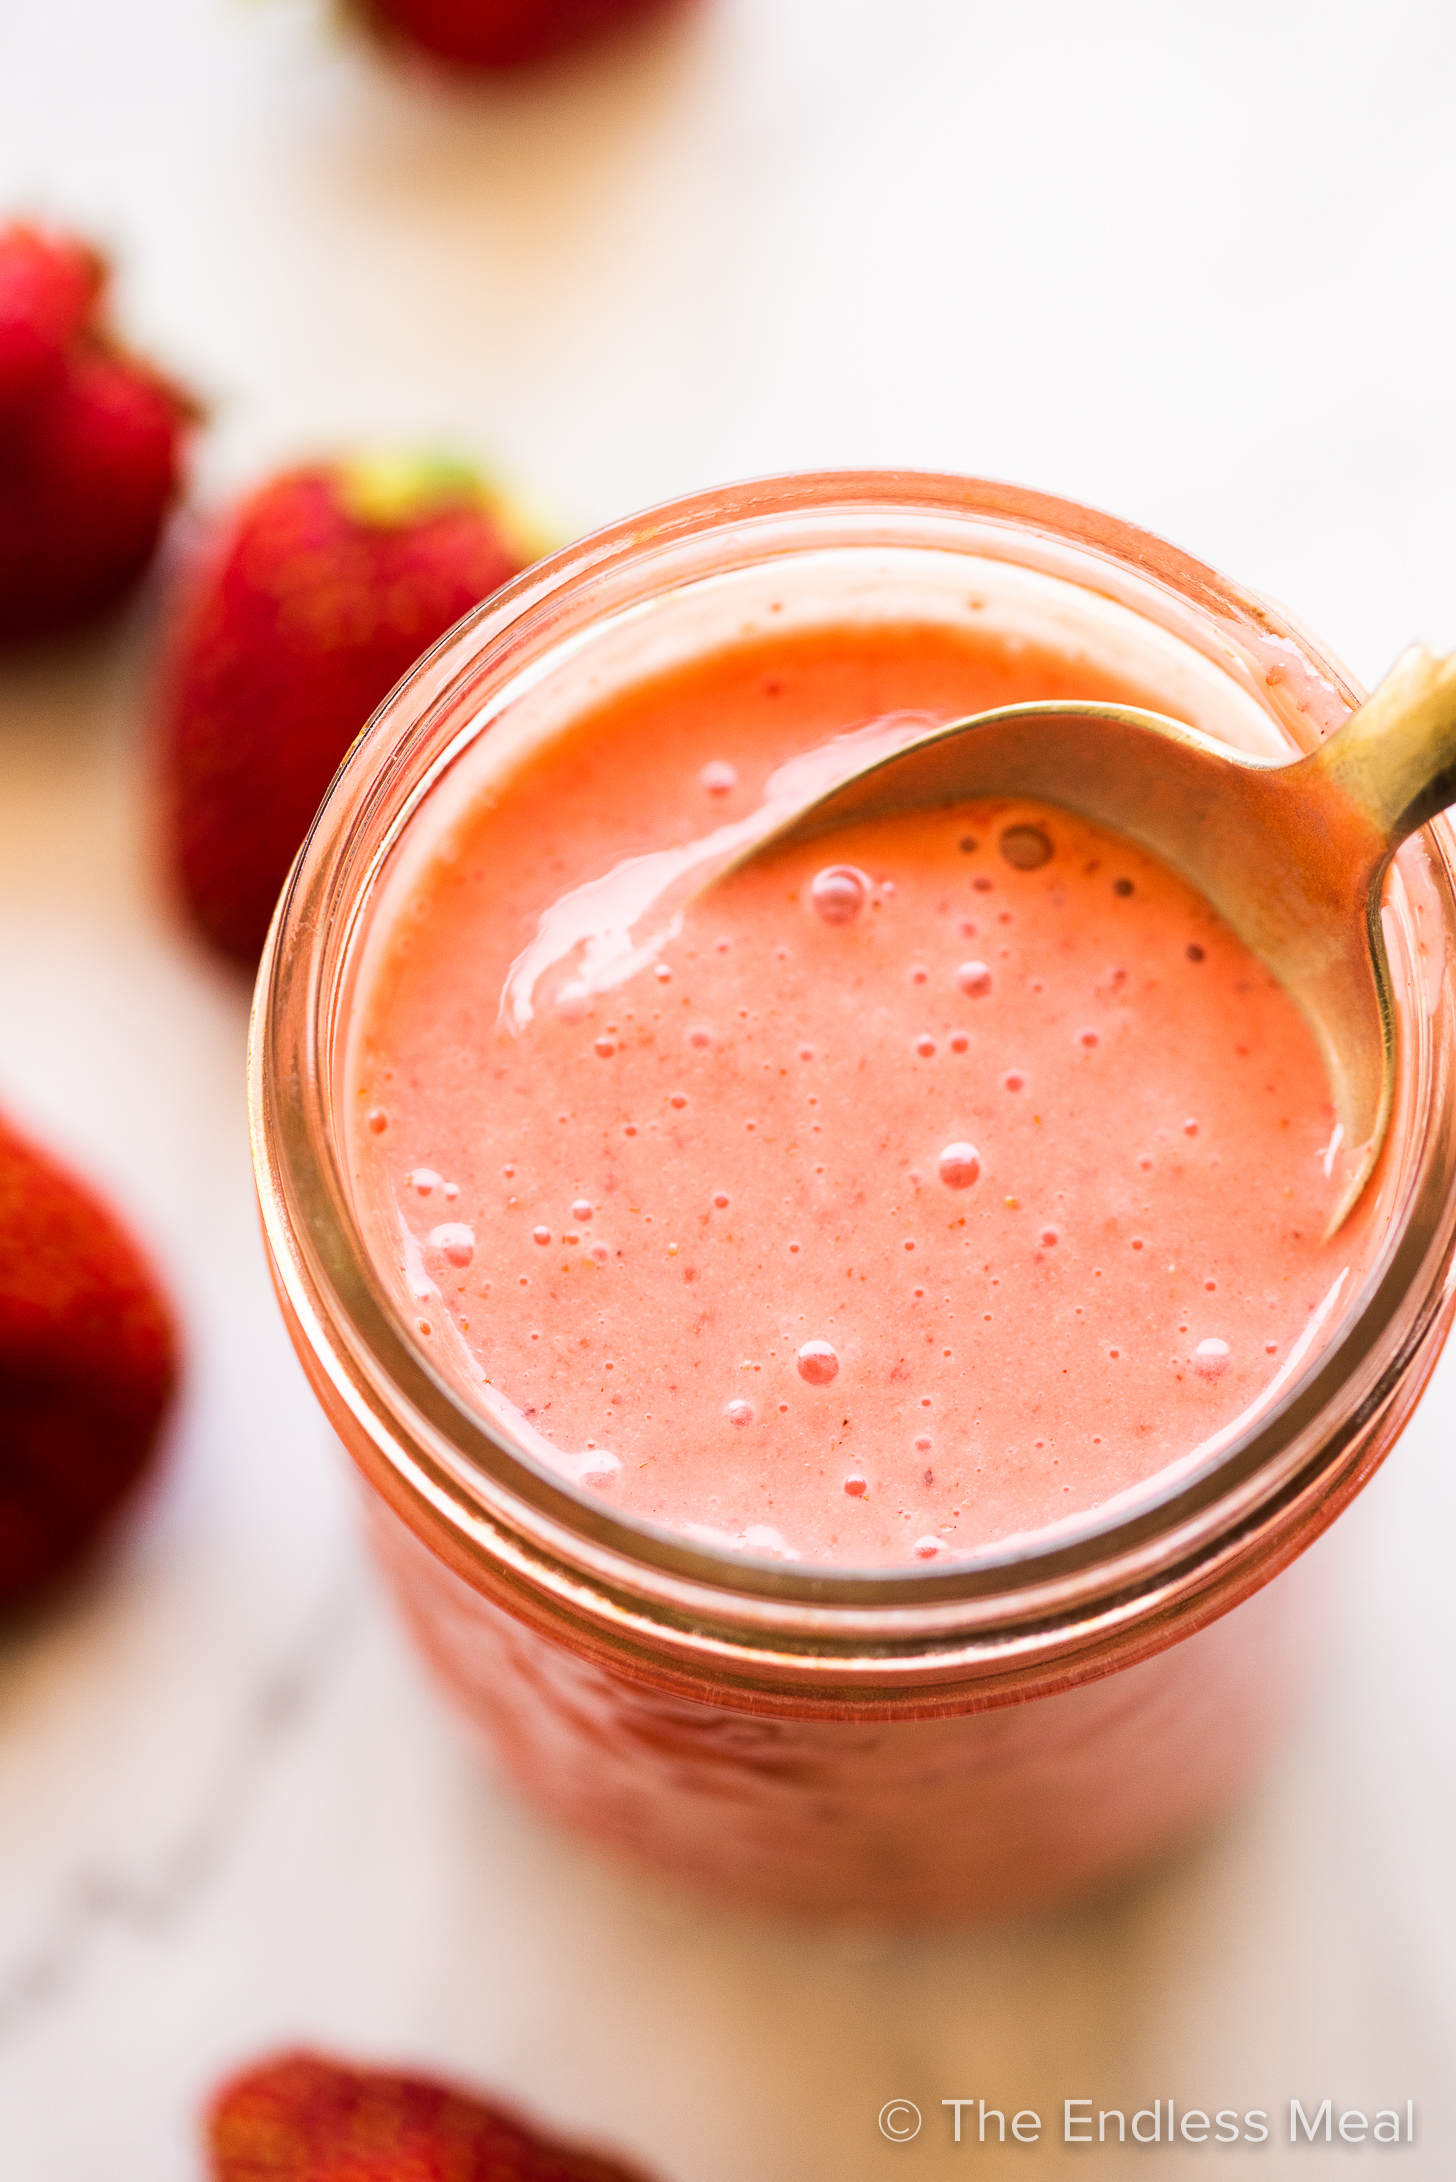 Strawberry vinaigrette in a glass jar with a spoon.